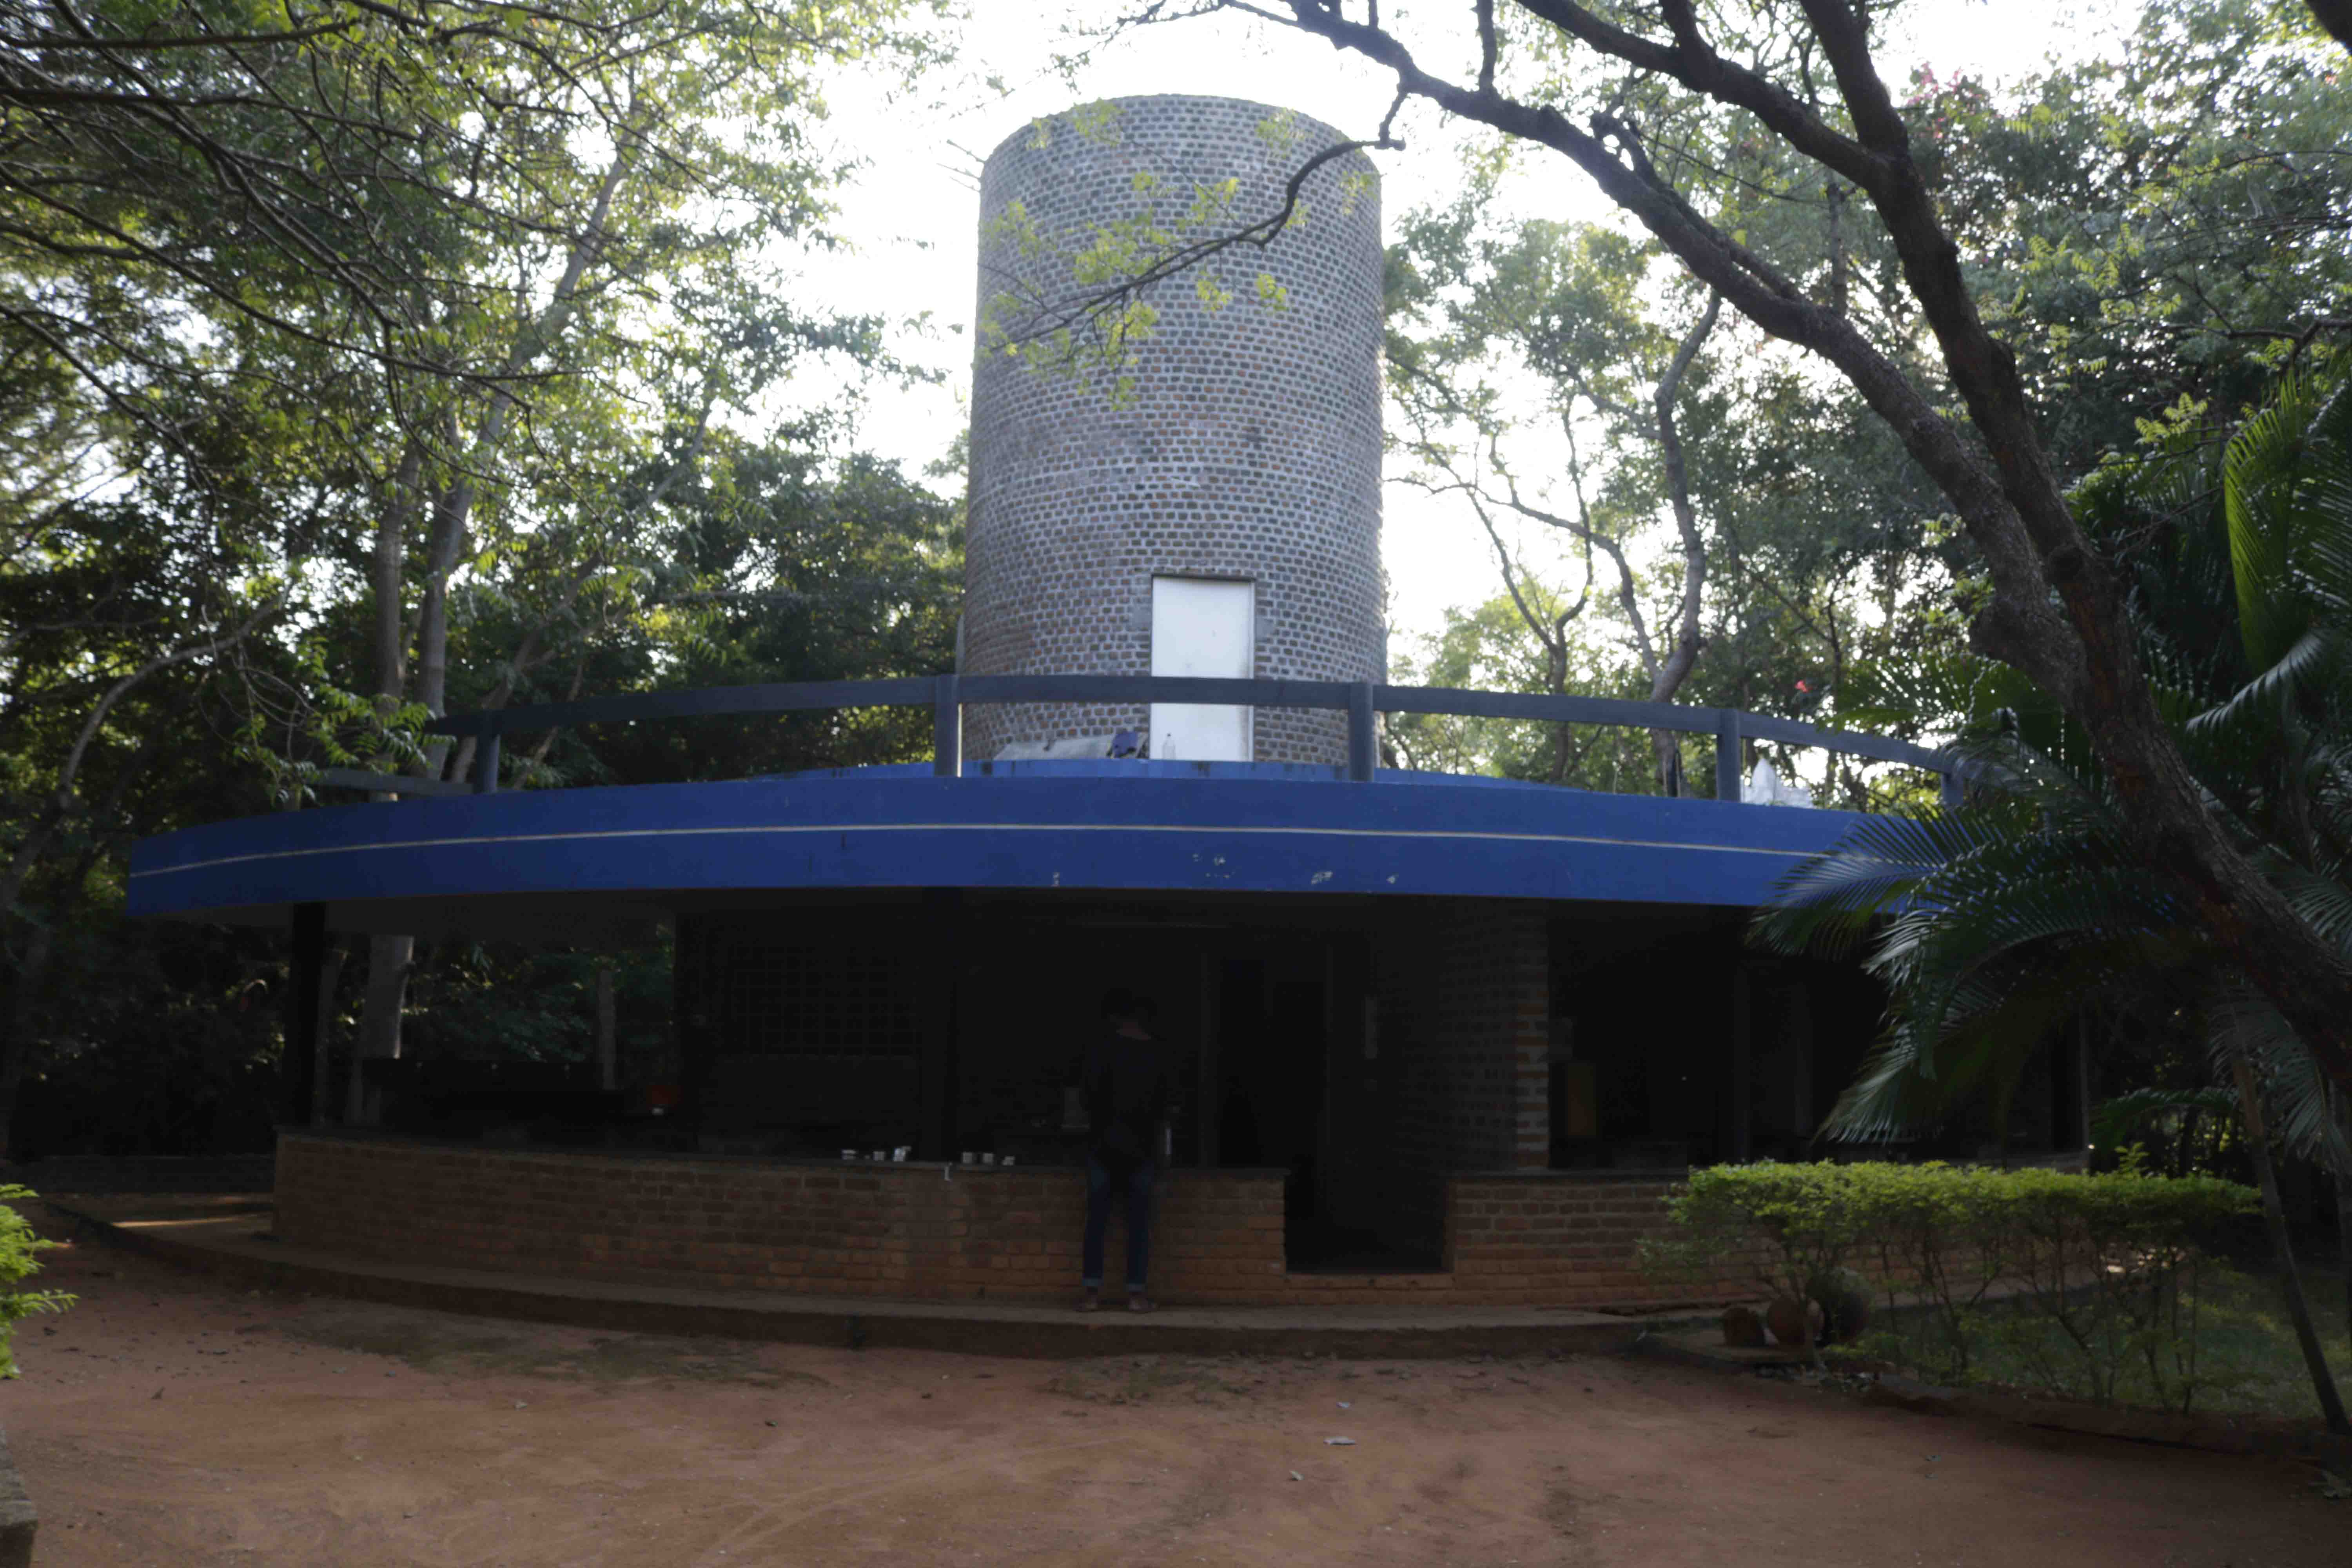 WATER TANK AND LUNCH AREA